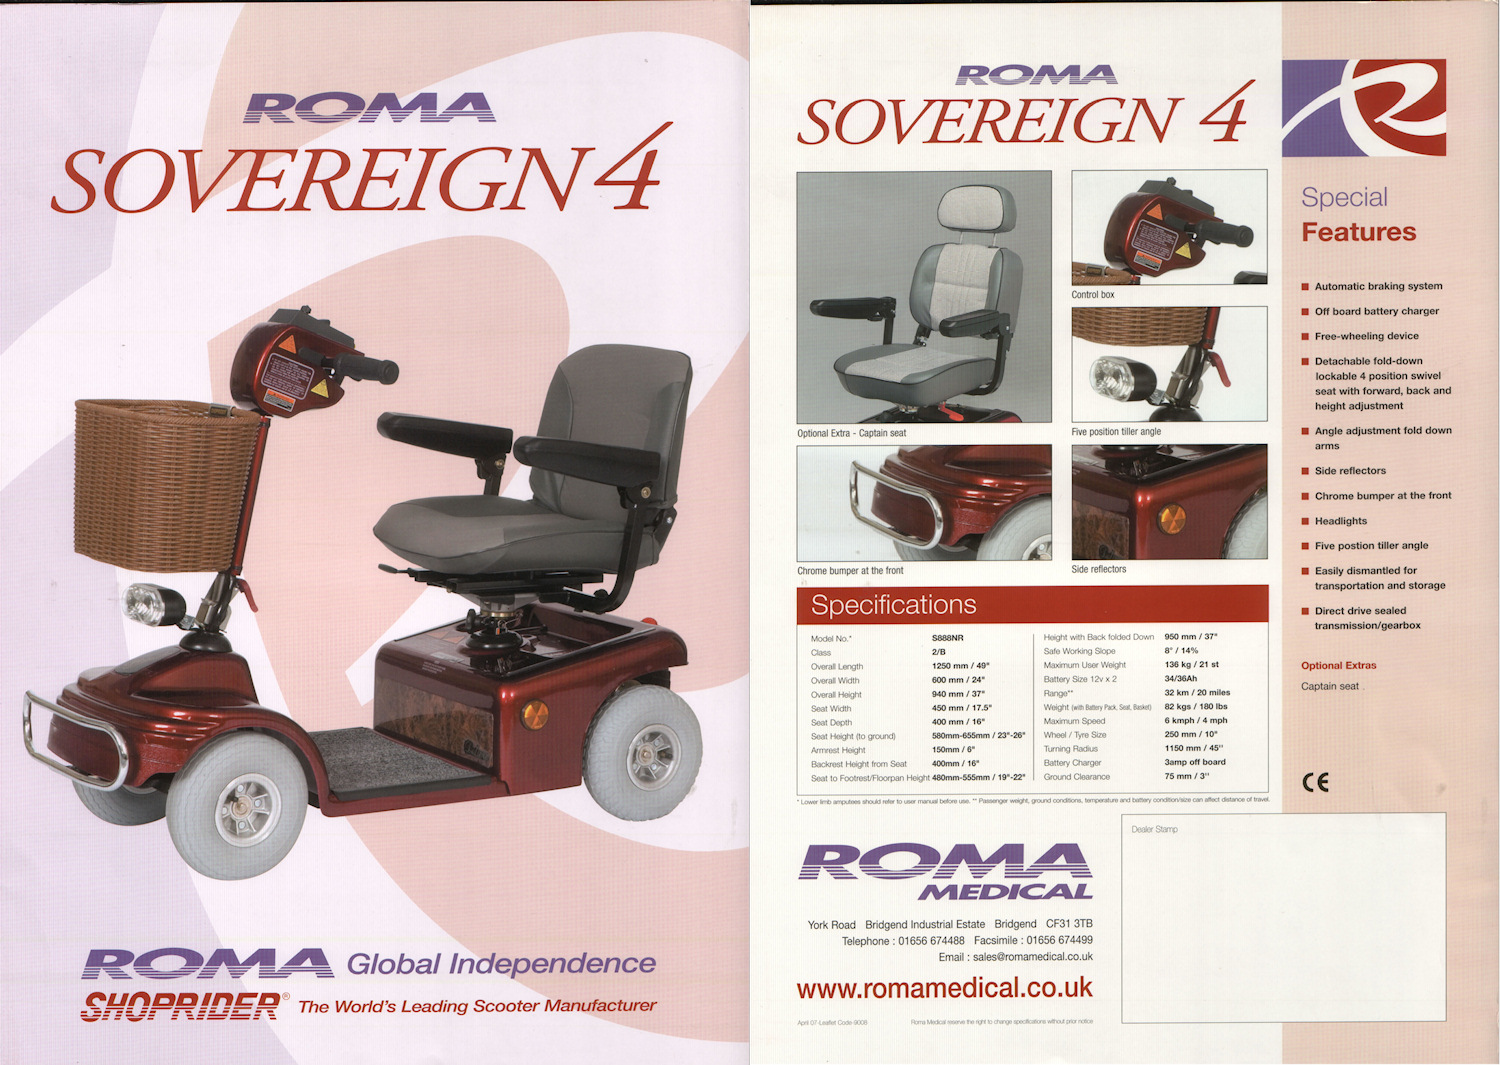 Sovereign 4 Mid-range Mobility Scooter